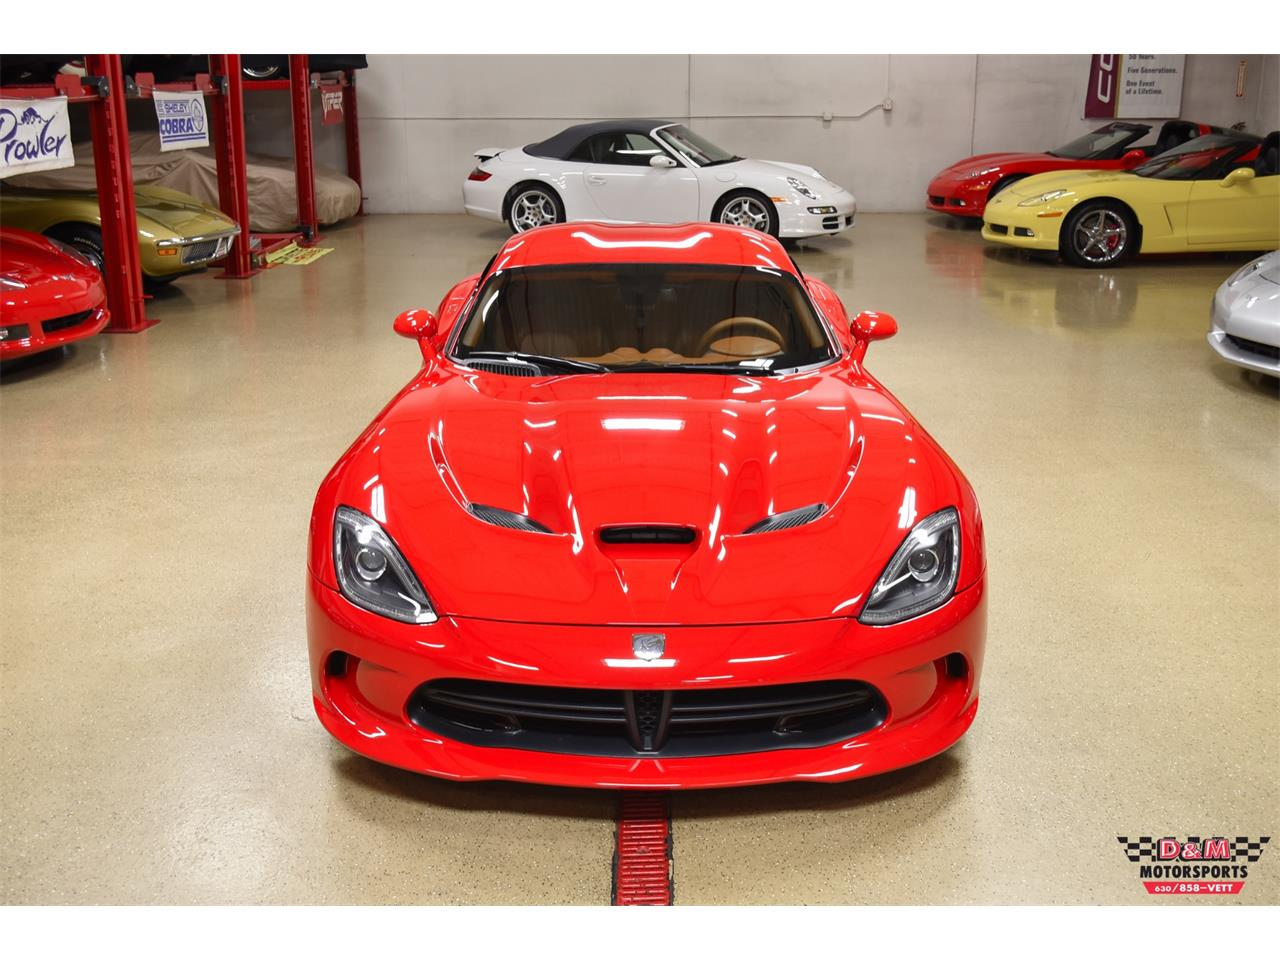 Large Picture of '13 Dodge Viper located in Glen Ellyn Illinois Offered by D & M Motorsports - PTPC